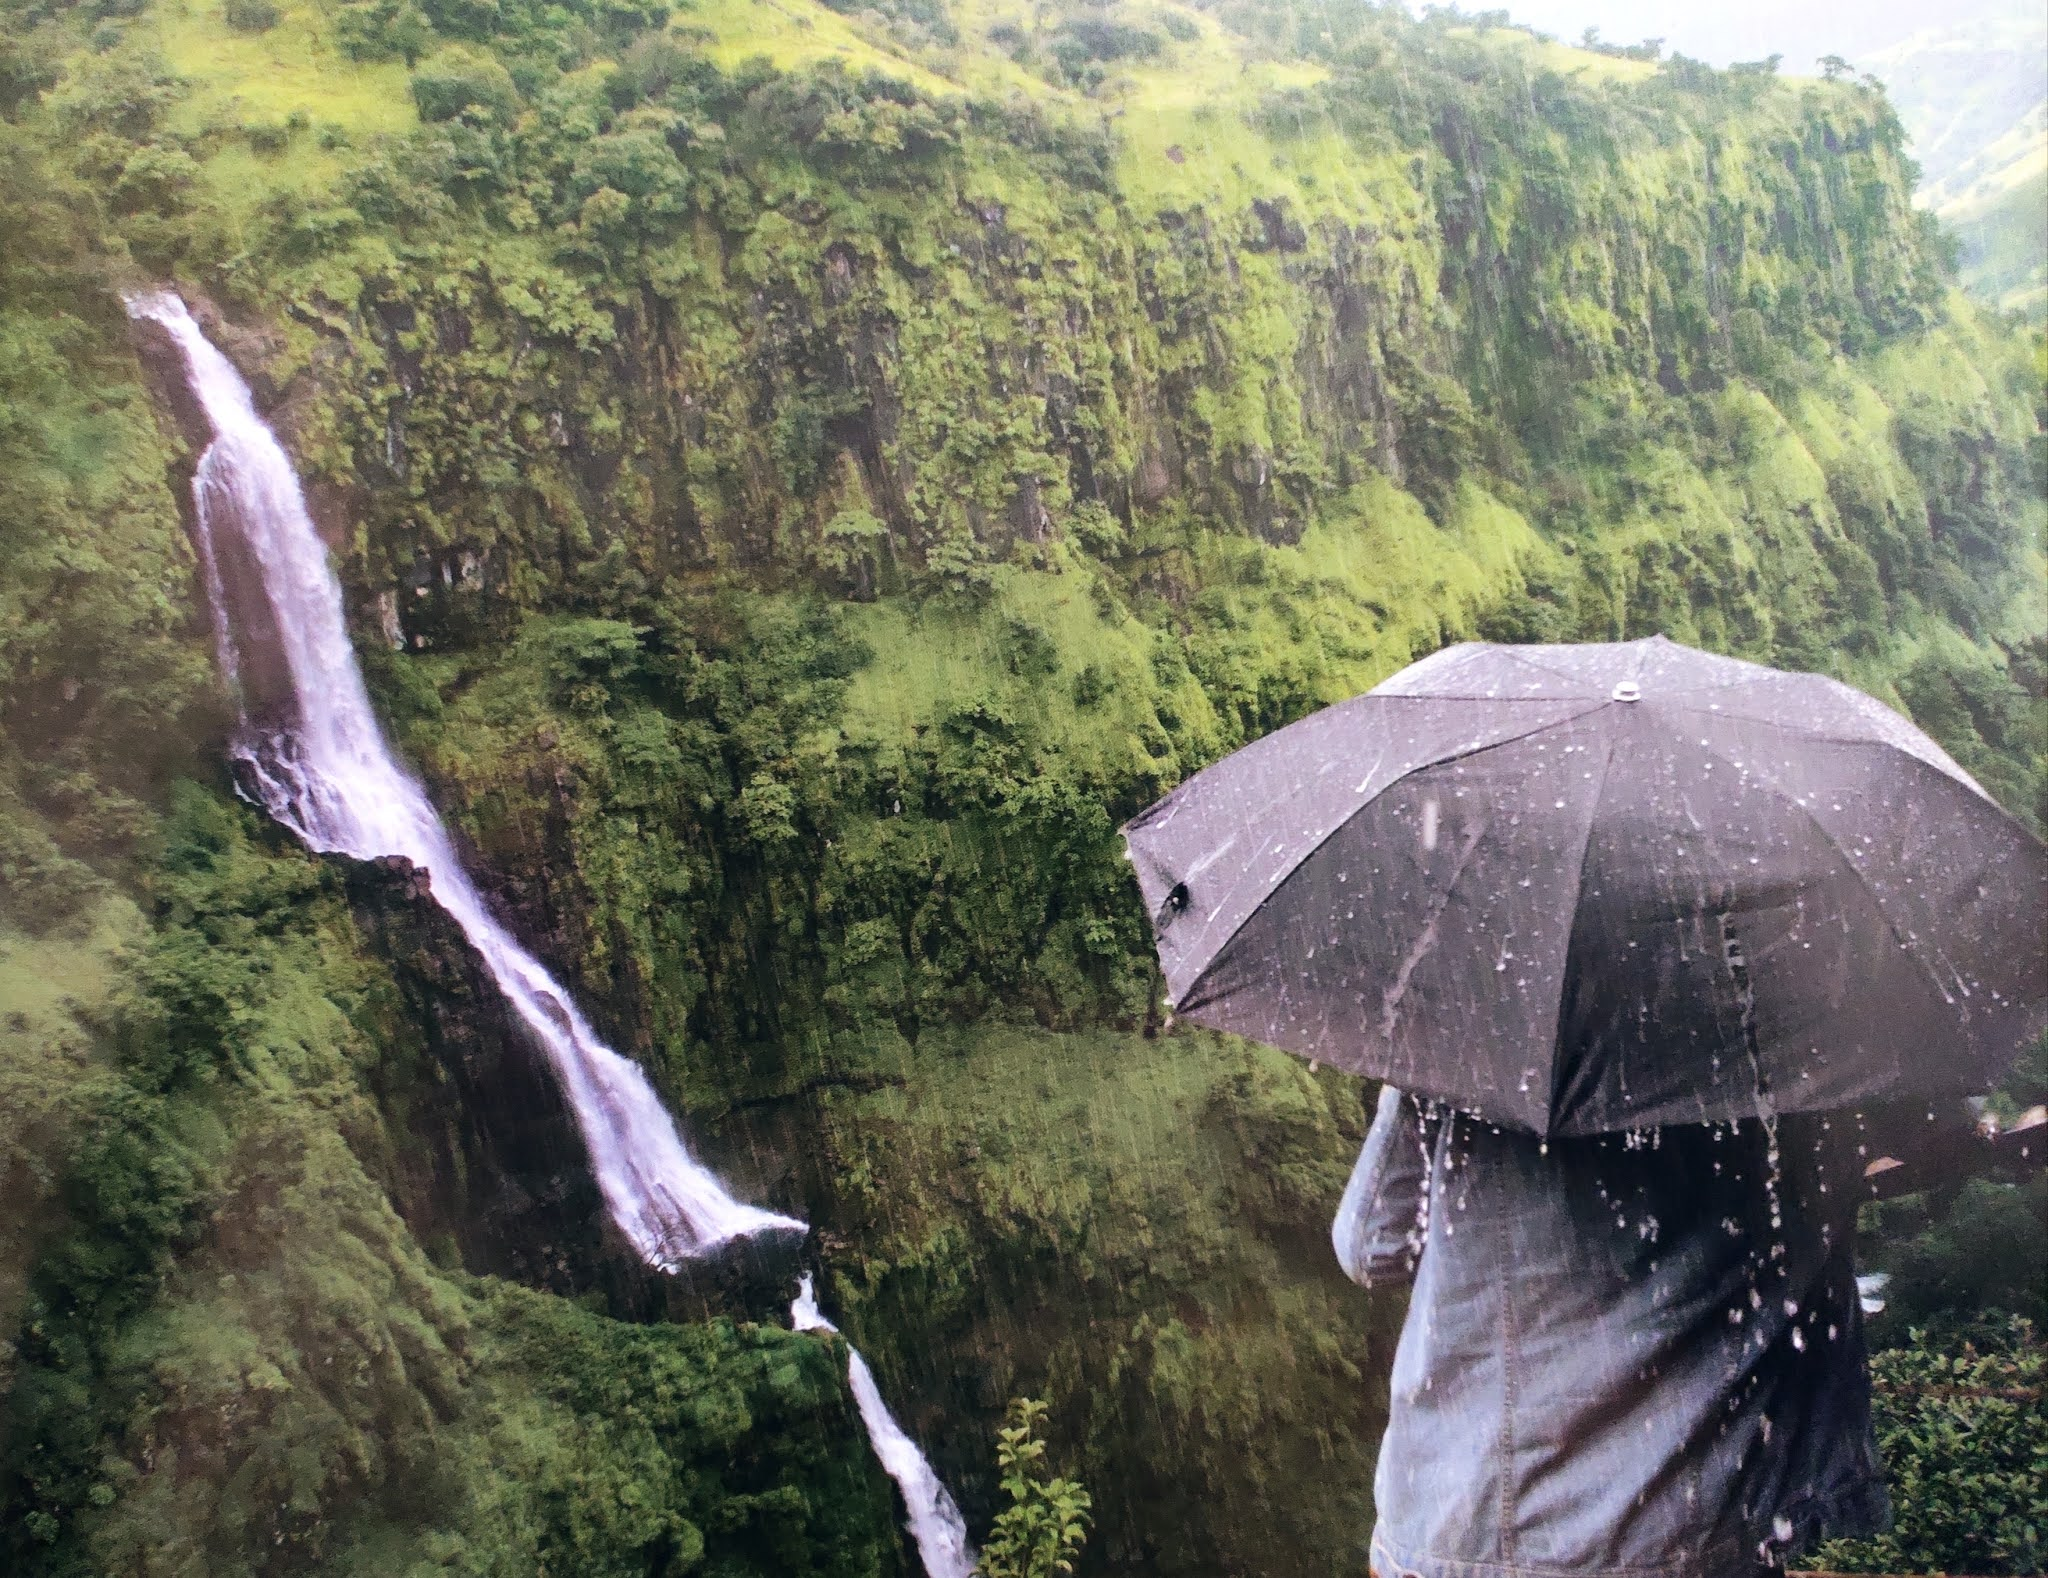 Image contains a water fall in rainy season